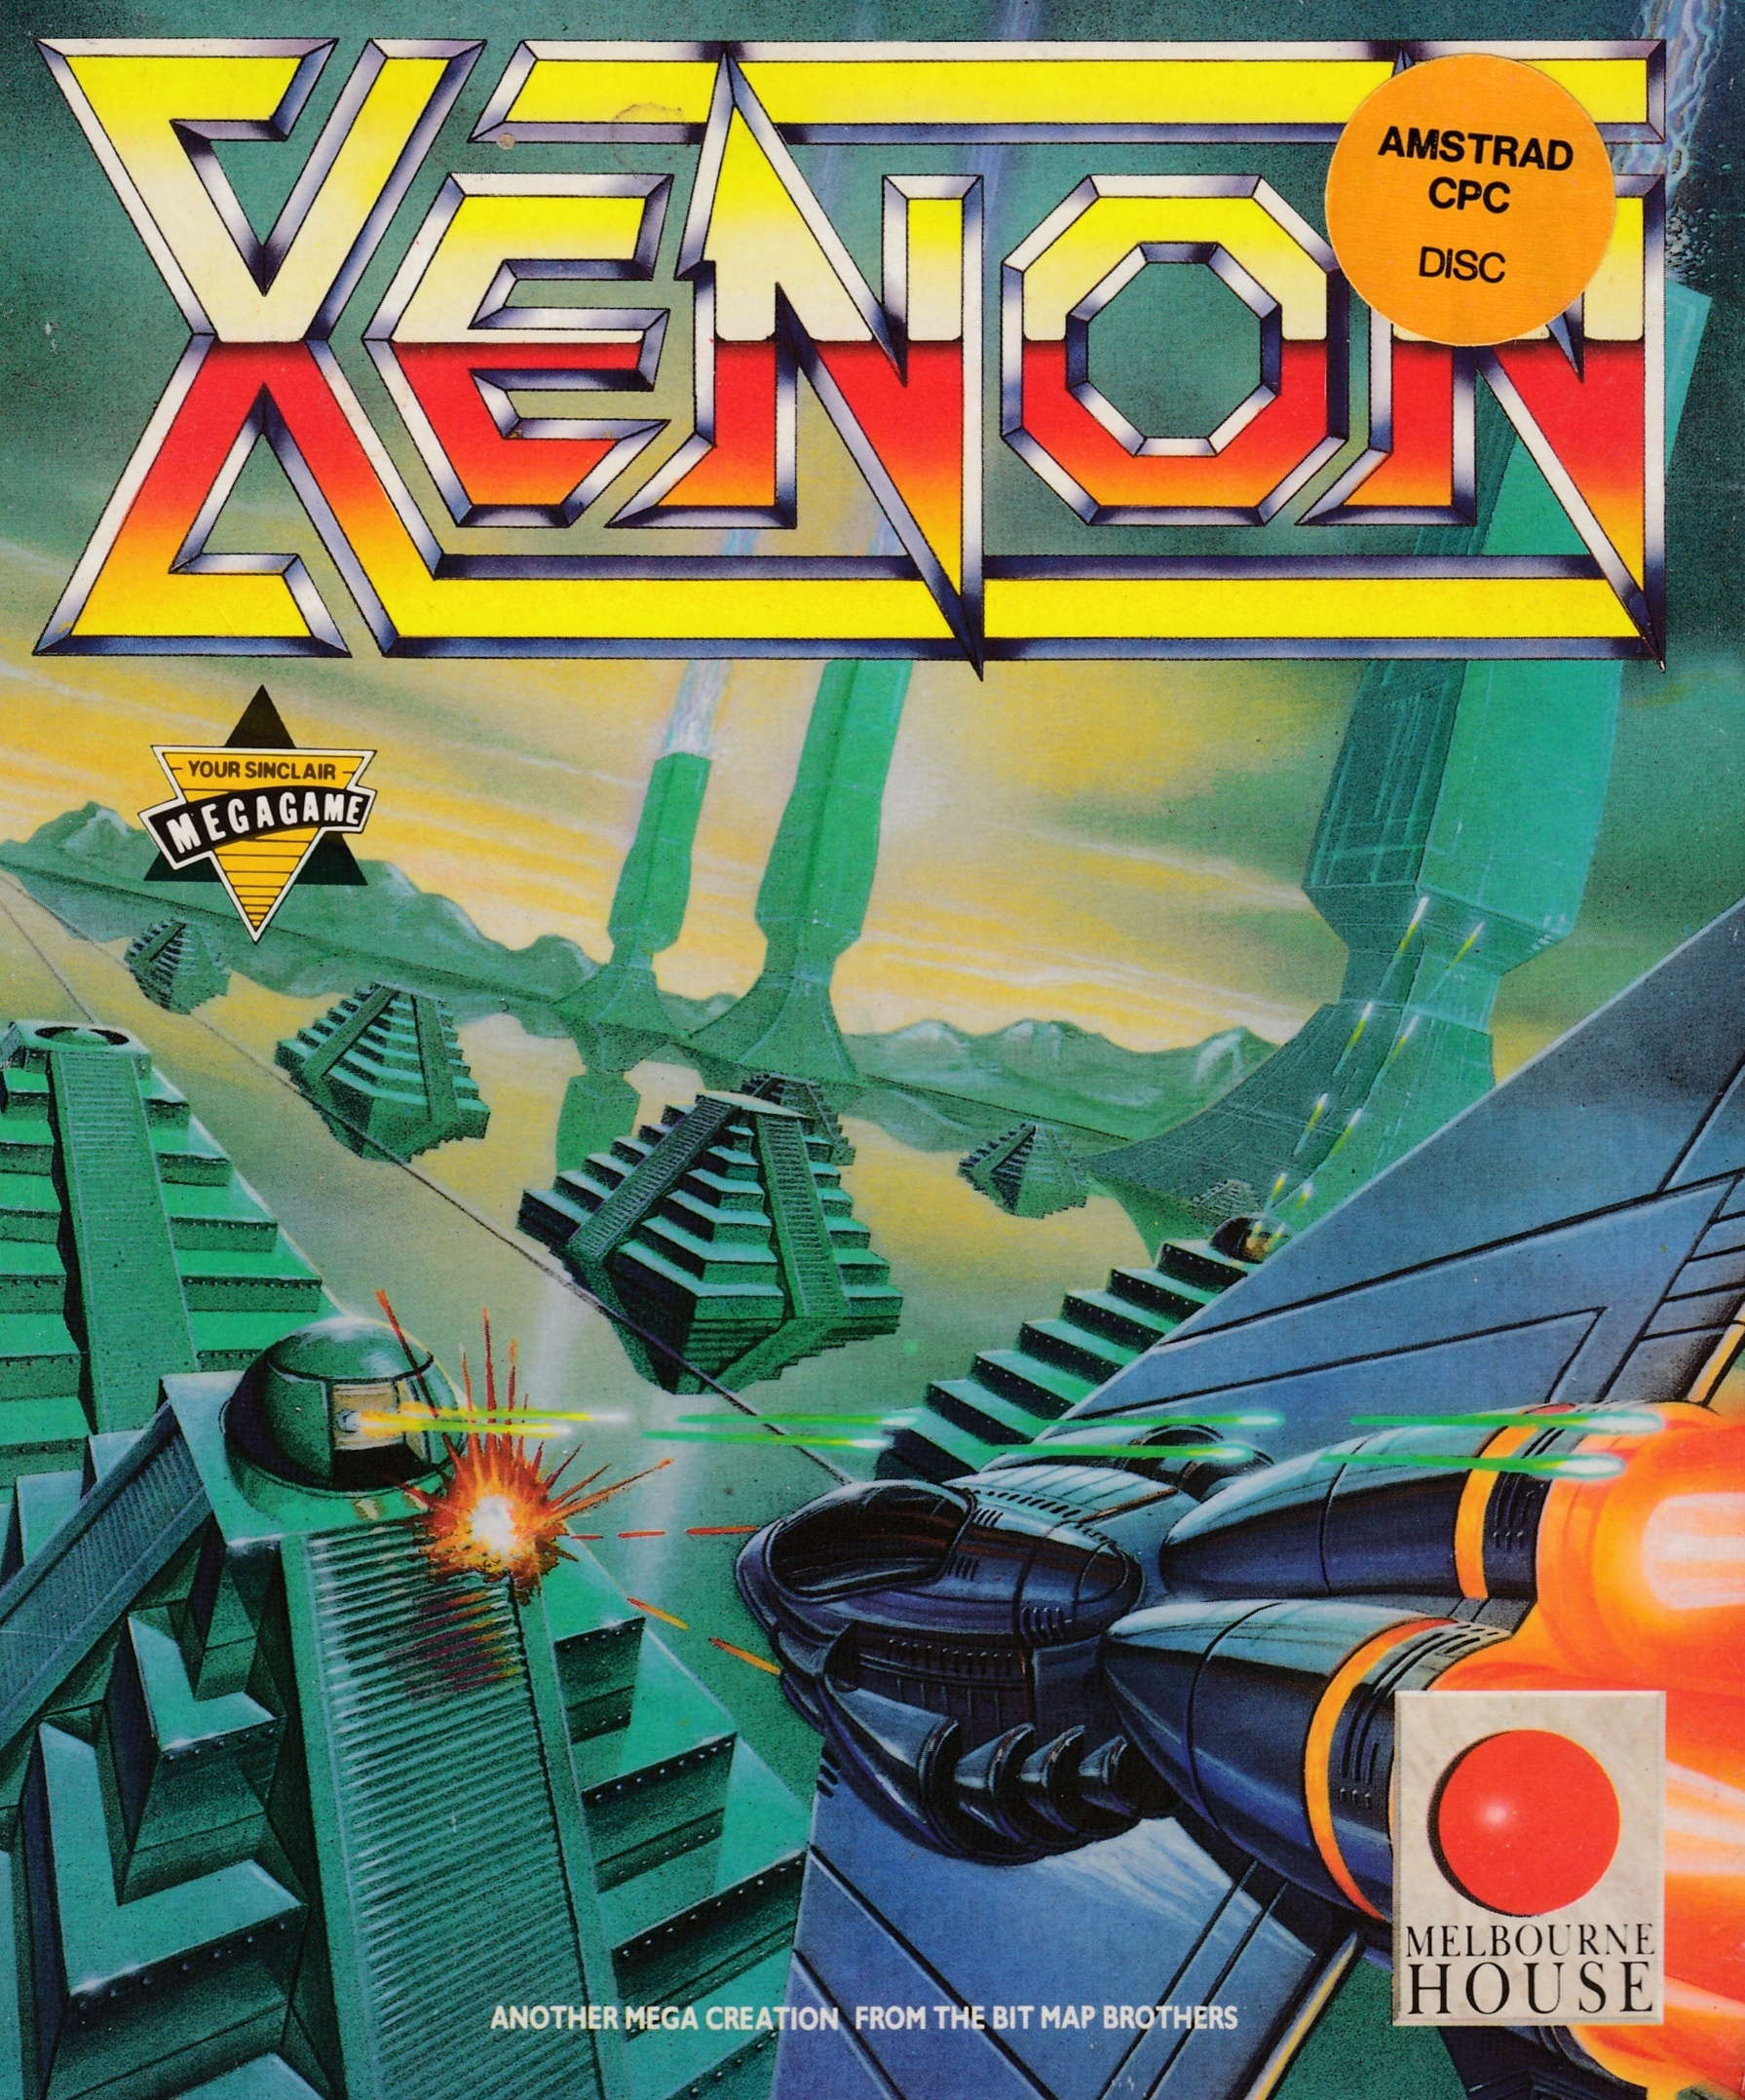 cover of the Amstrad CPC game Xenon  by GameBase CPC